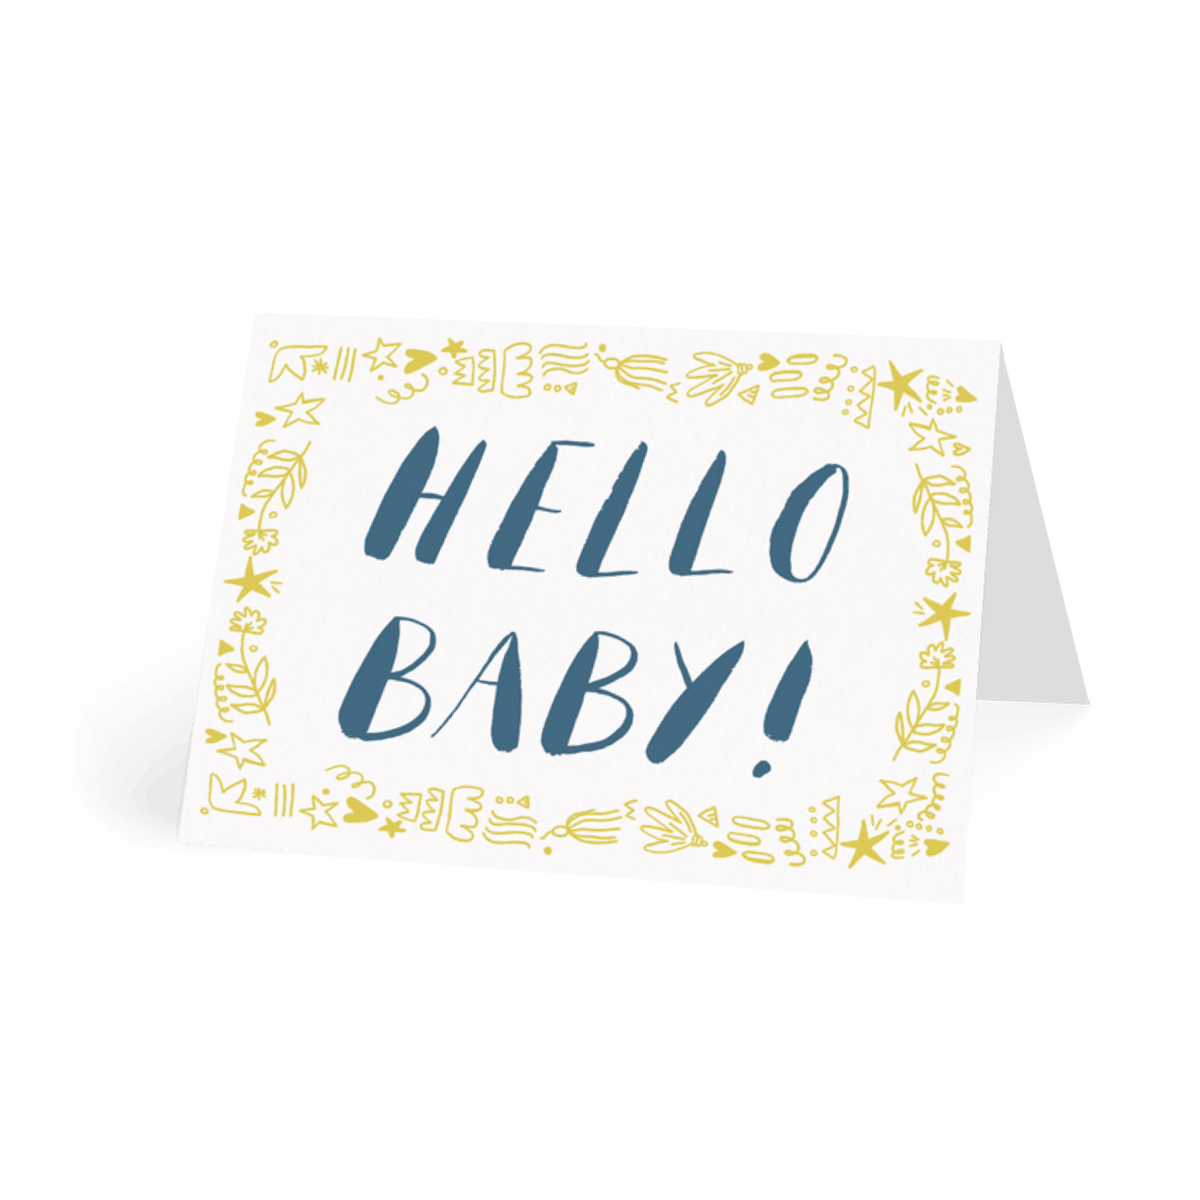 Https%3a%2f%2fwww.papier.com%2fproduct image%2f14763%2f14%2fhello baby 3934 front 1481125116.png?ixlib=rb 1.1